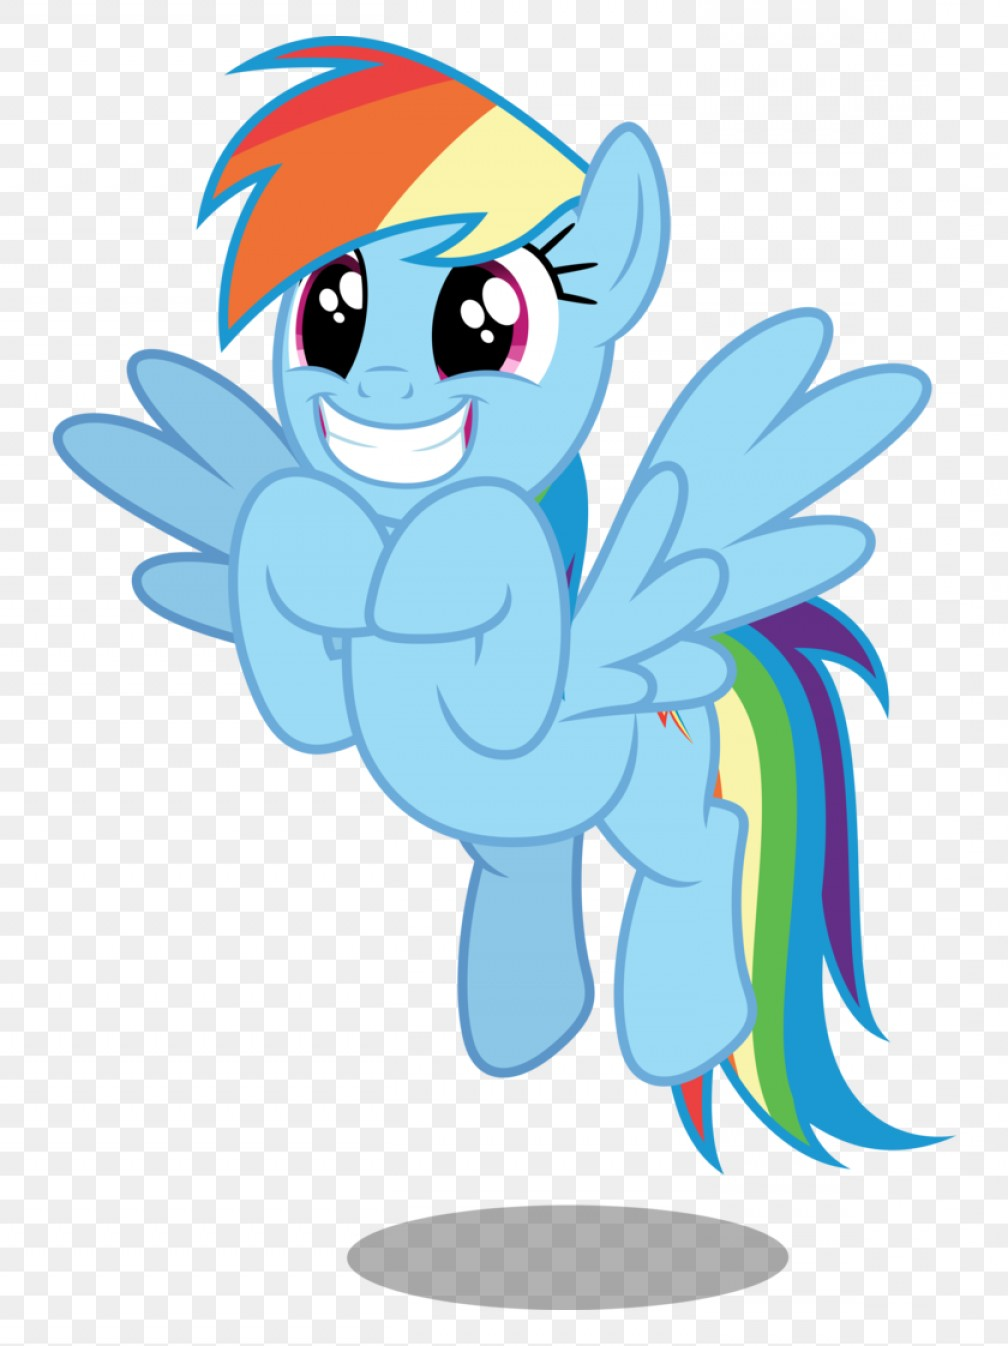 Angry Rainbow Dash Vector: I Want To Come Inside Rainbow Dash My Little Pony Friendship Rainbow Dash Clipart